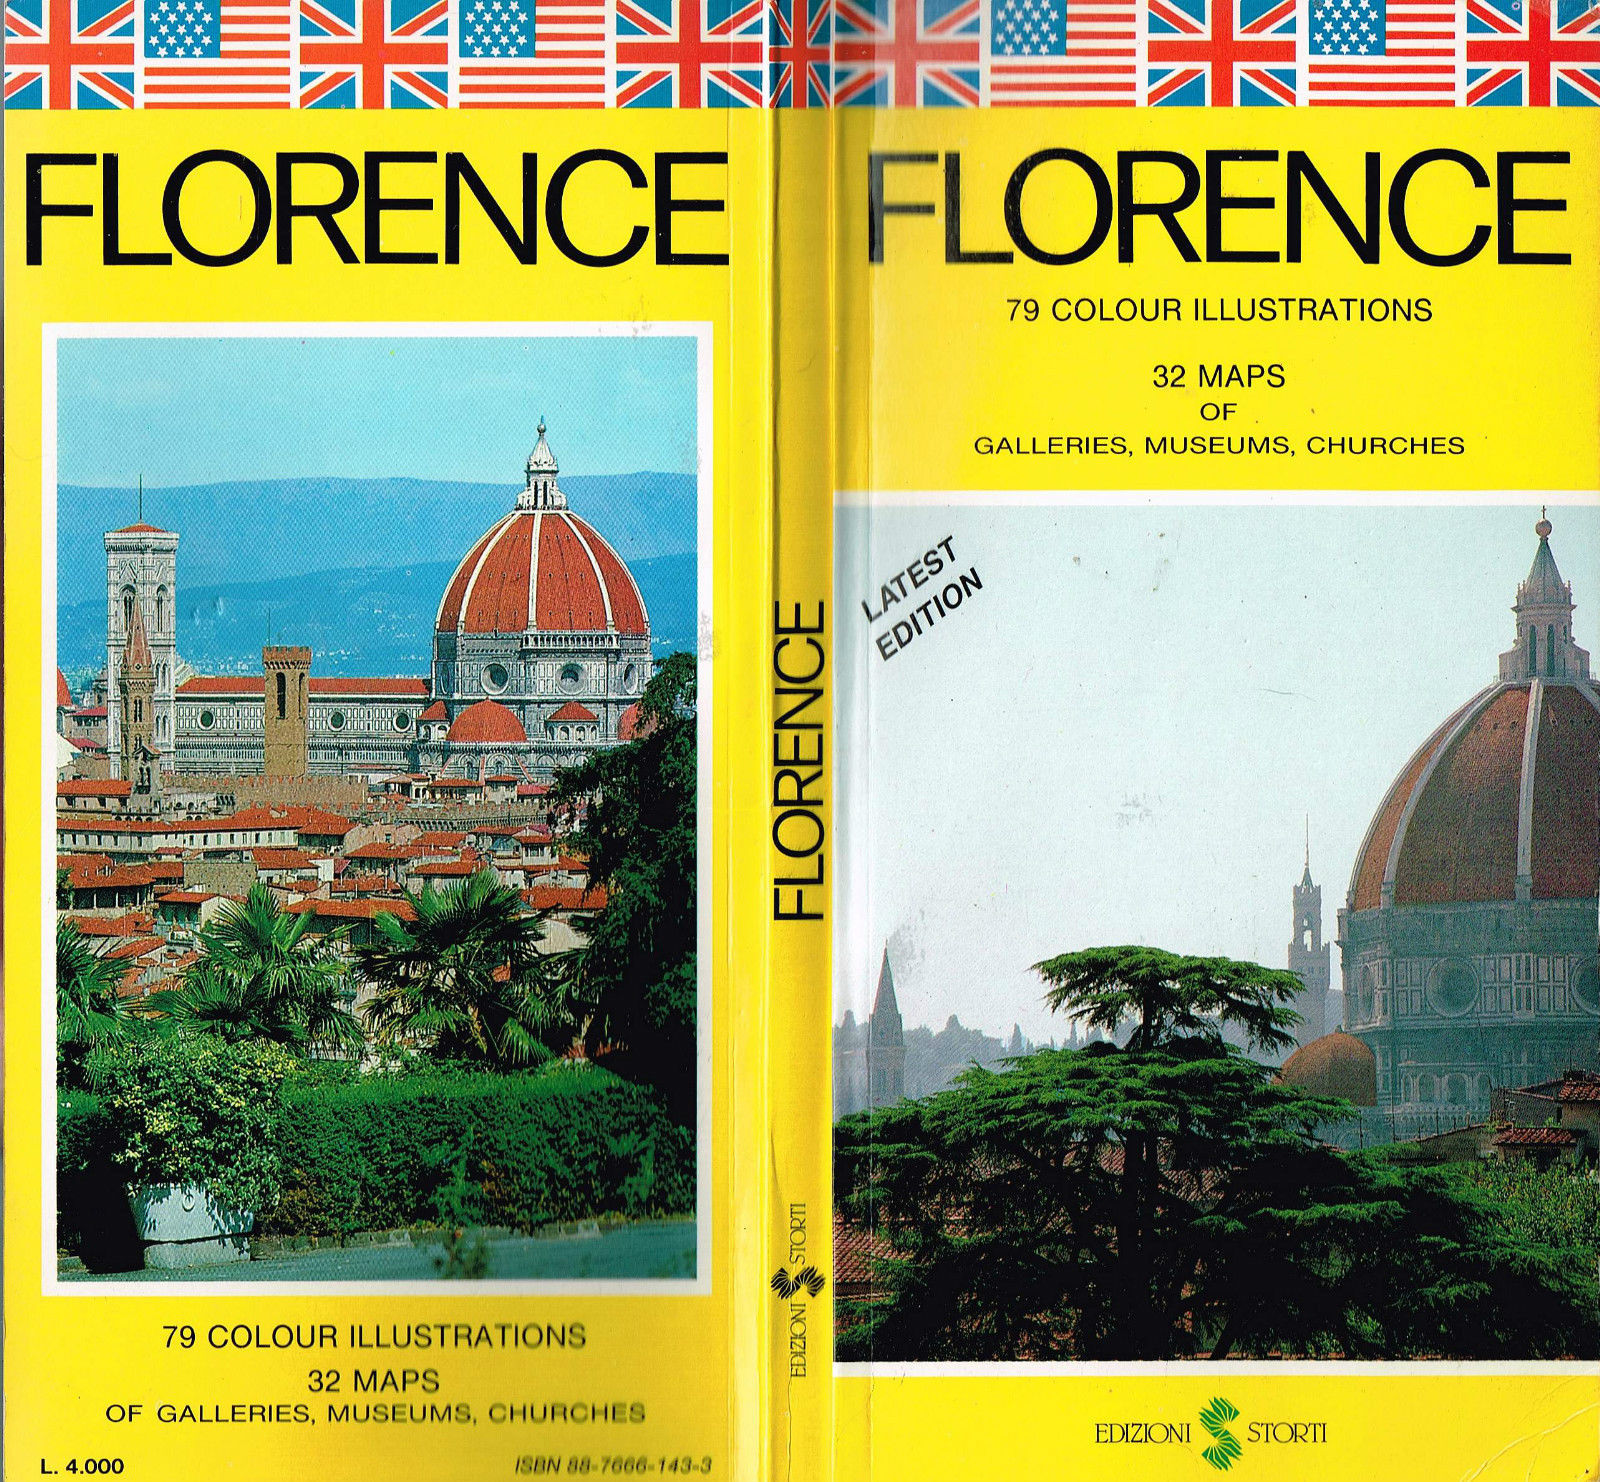 Italian Florence: Florence Italy Edizioni Storti 1992 Travel Guide Firenze